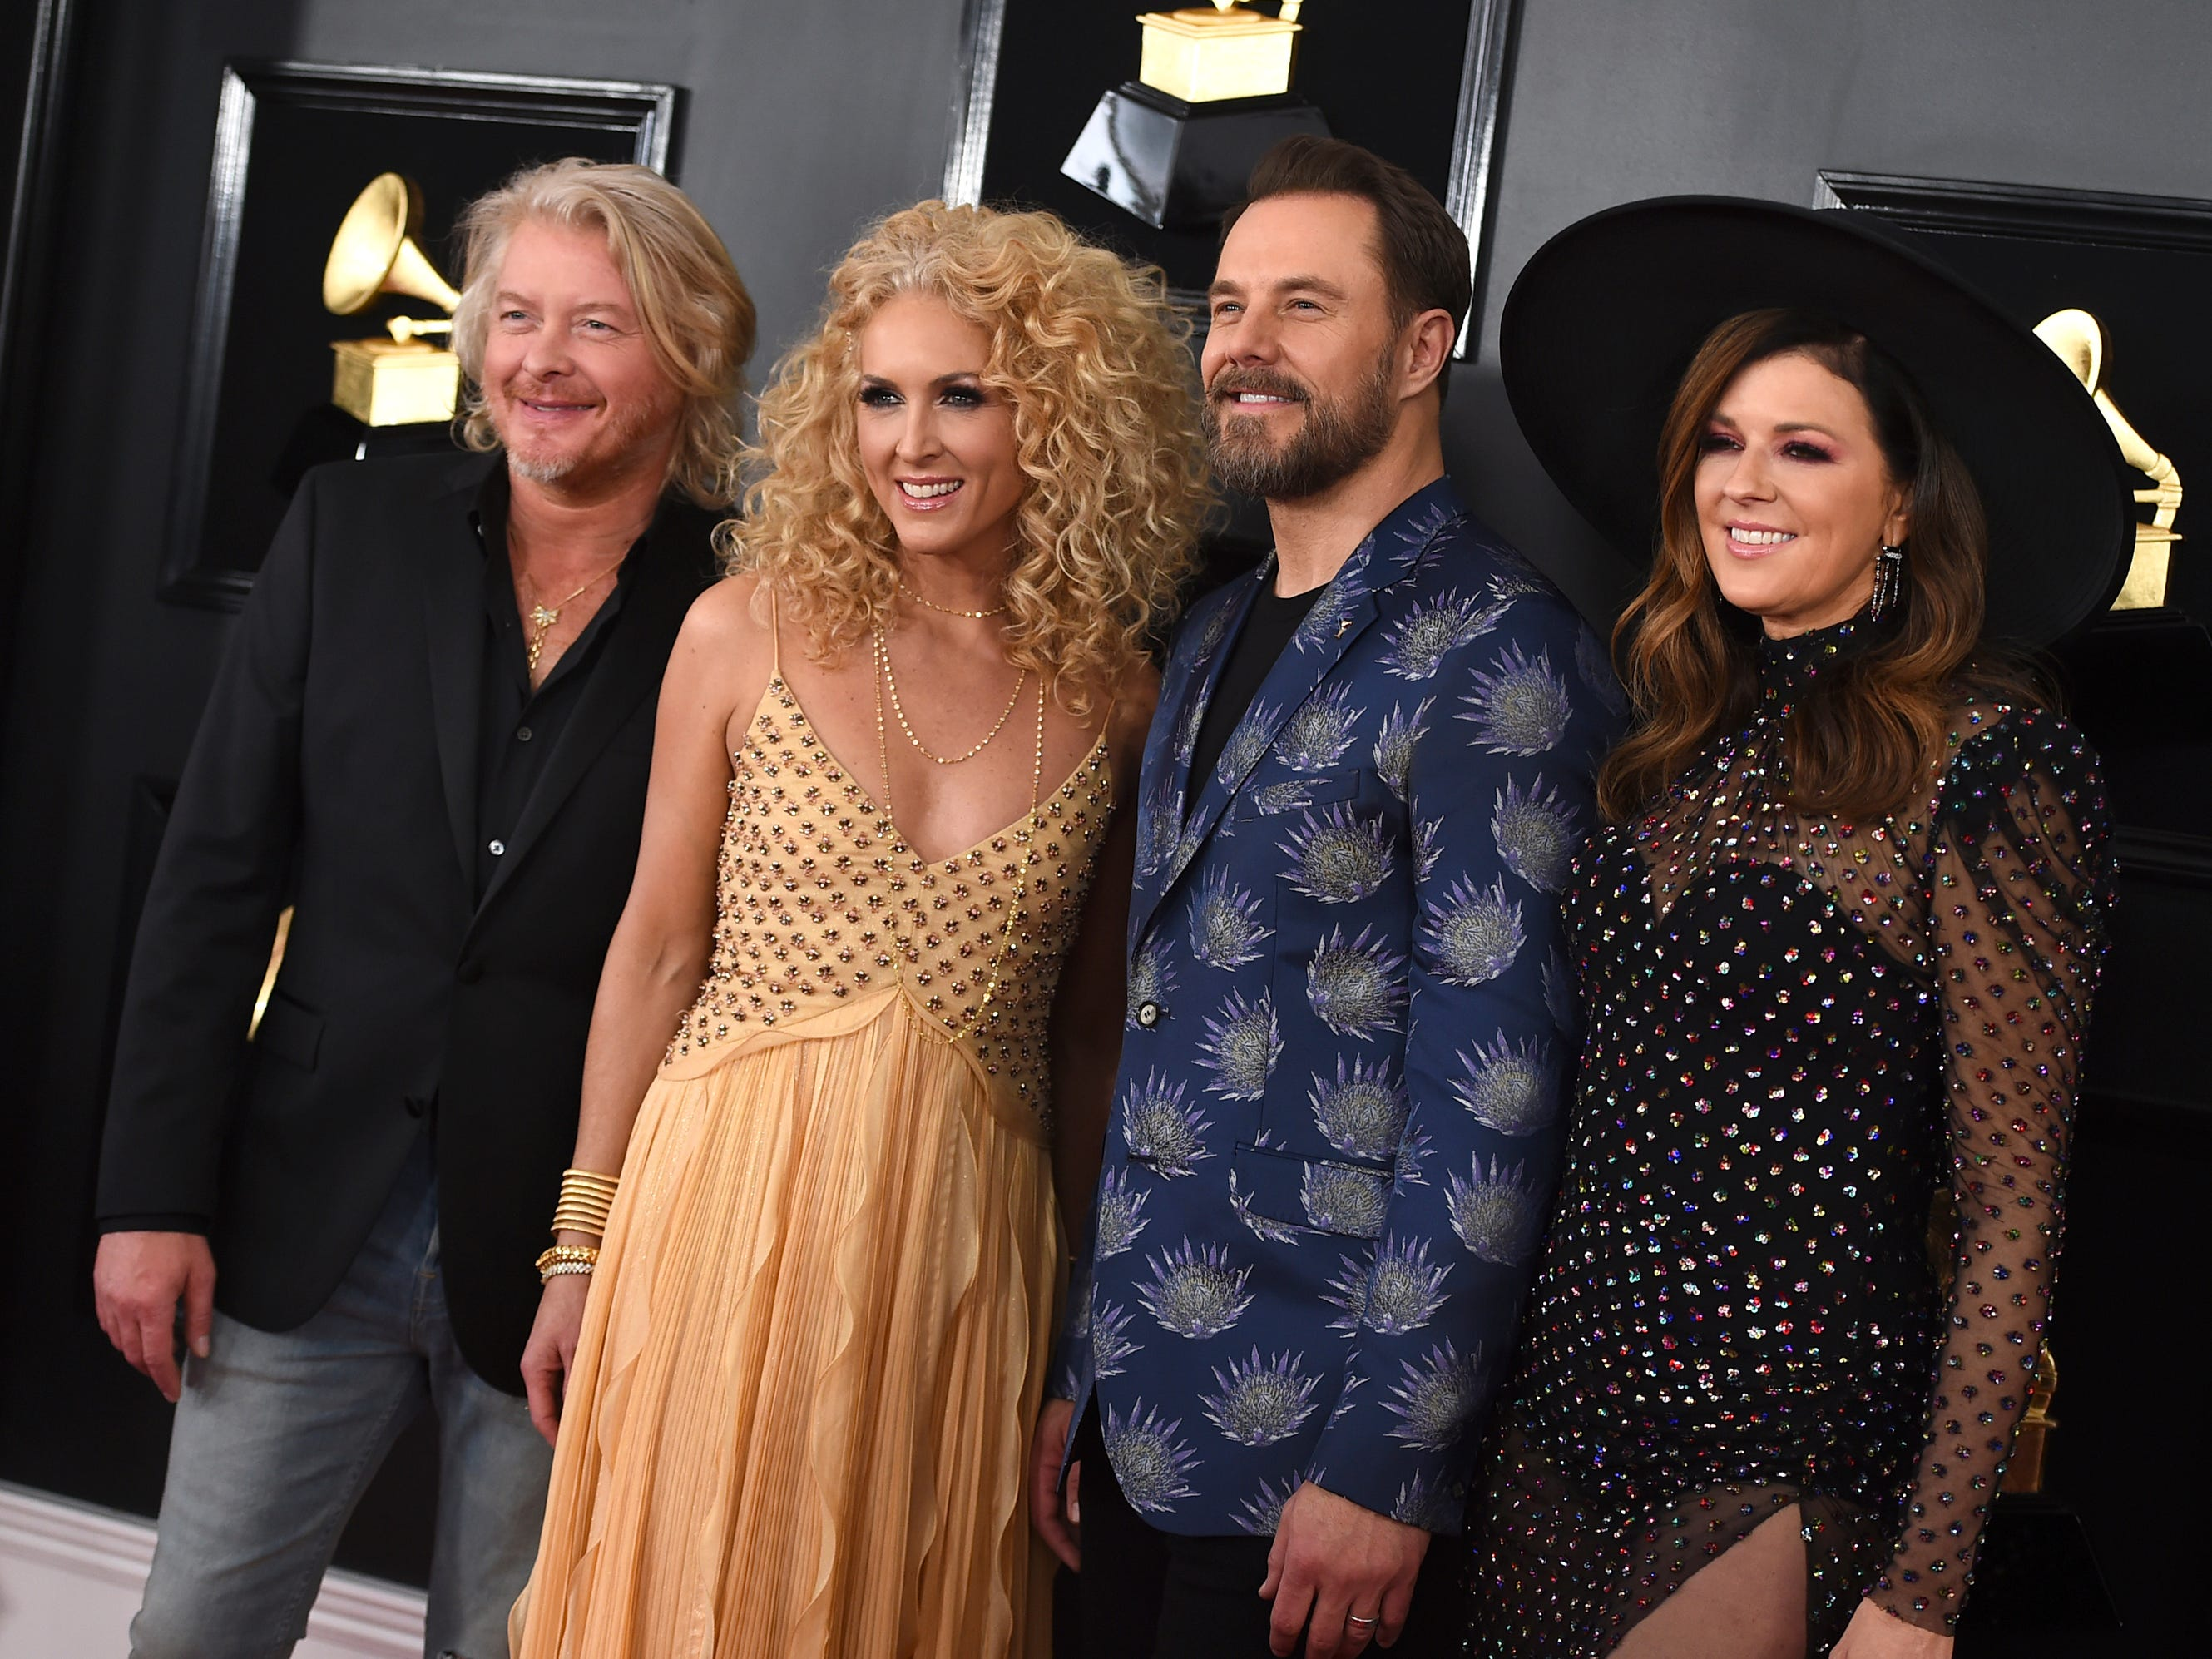 Philip Sweet, from left, Kimberly Schlapman, Jimi Westbrook, and Karen Fairchild of Little Big Town arrive at the 61st annual Grammy Awards at the Staples Center on Sunday, Feb. 10, 2019, in Los Angeles.